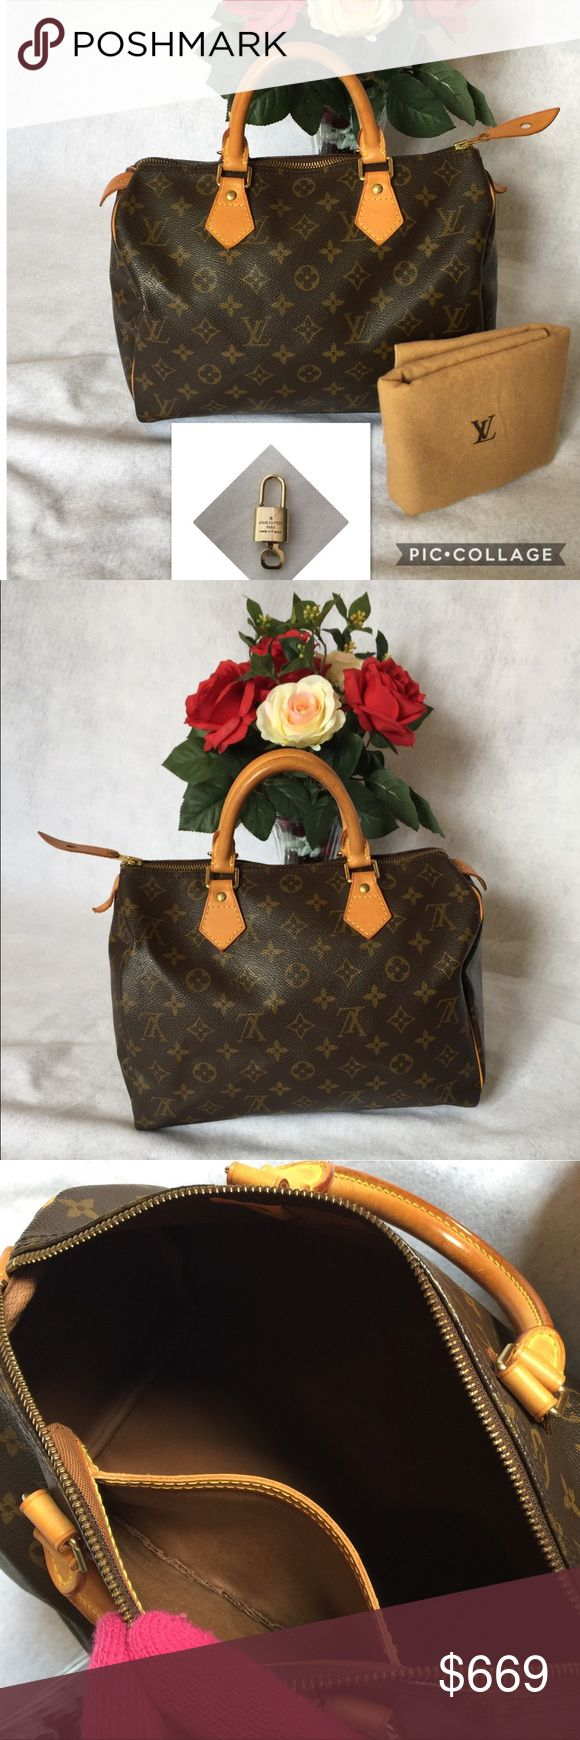 ❤️Authentic Louis Vuitton Speedy 30❤️ Authentic pre owned Louis Vuitton Speedy 30. Made in France, date. Code TH1021. Theirs loose thread on handle part and small ink mark inside yet In very good condition. Clean inside out ready to used. Comes with lock set and dust bag. Please see the pictures for more details. Thanks Louis Vuitton Bags Satchels